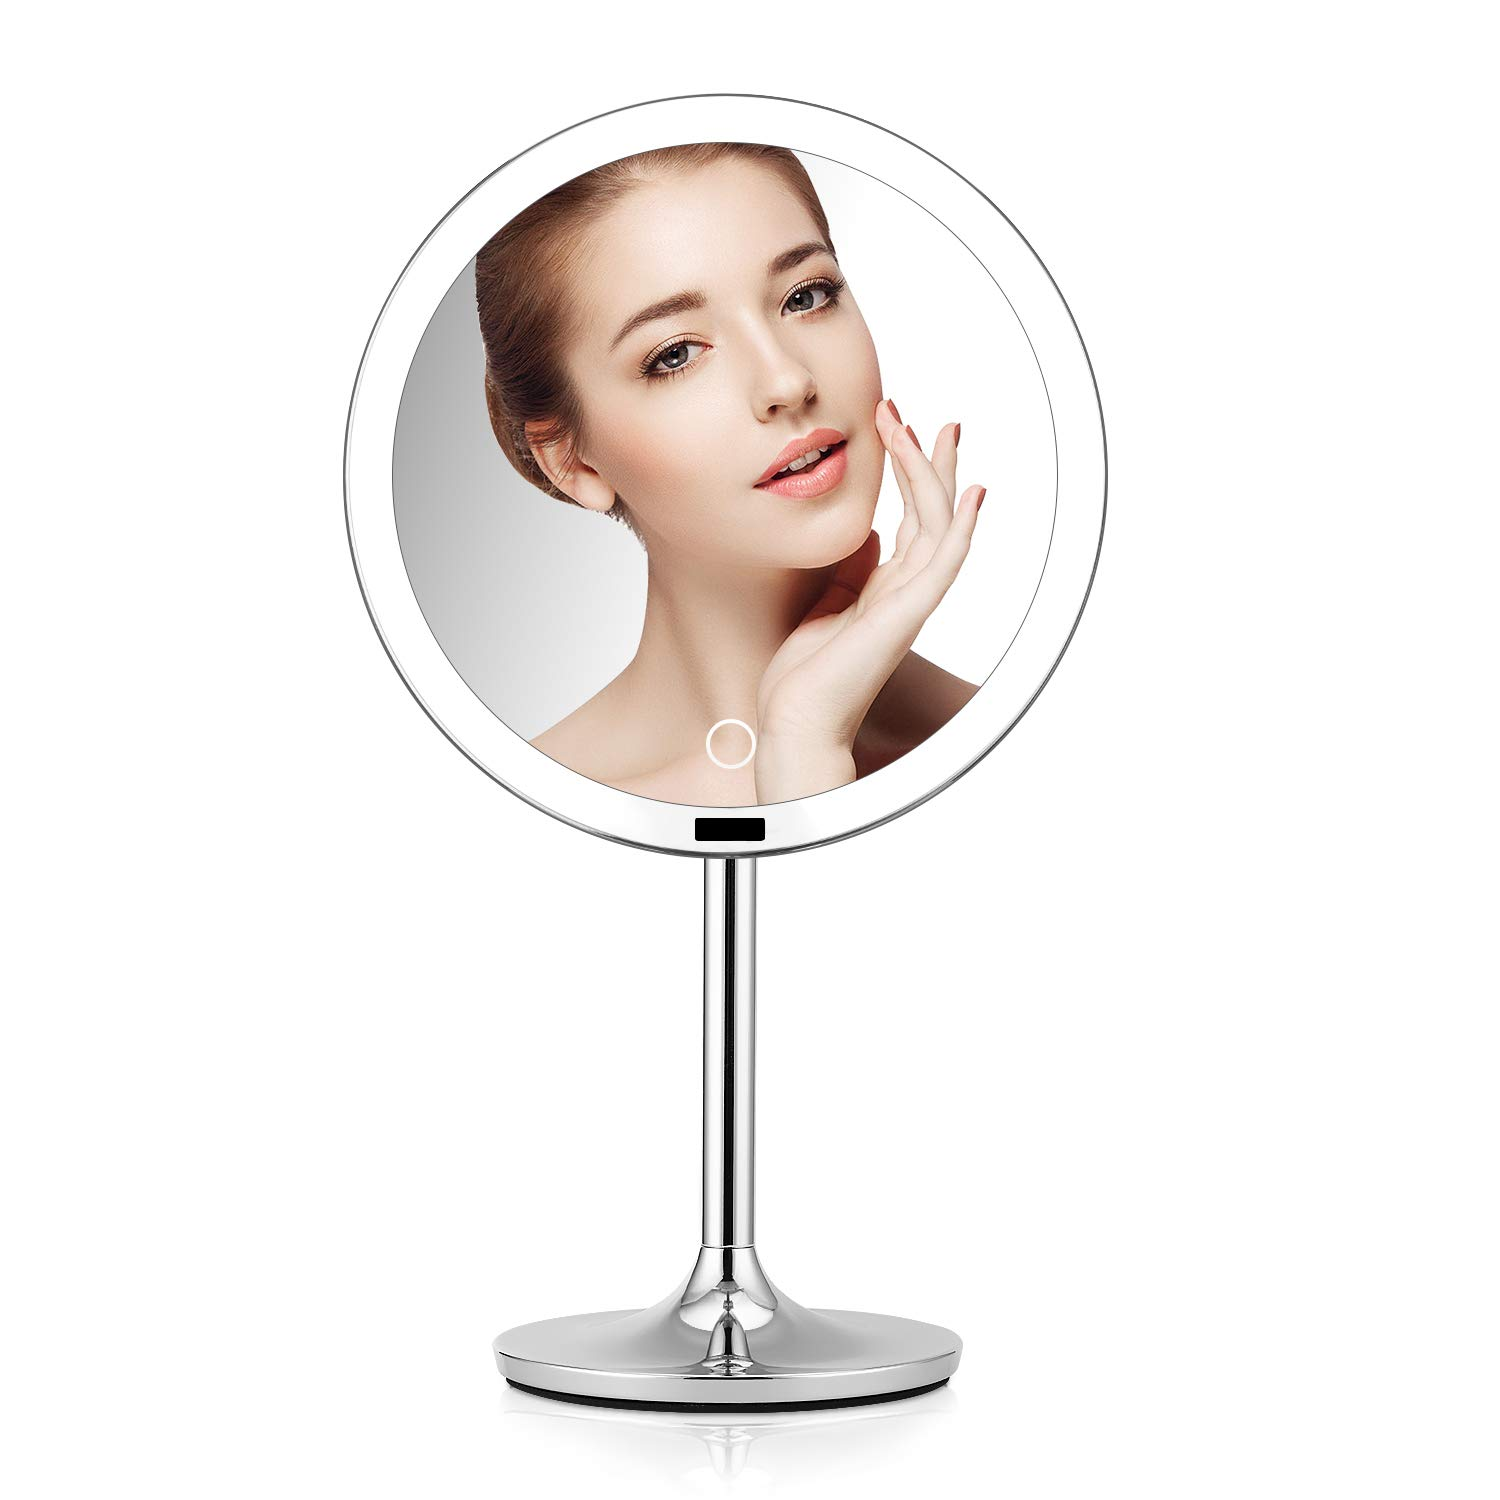 BRIGHTINWD 8.5'' Lighted Makeup Mirror with Sensor, Makeup Vanity Mirror with Lights, Brightness Control, Rechargeable and Cordless, Polished Chrome Finish